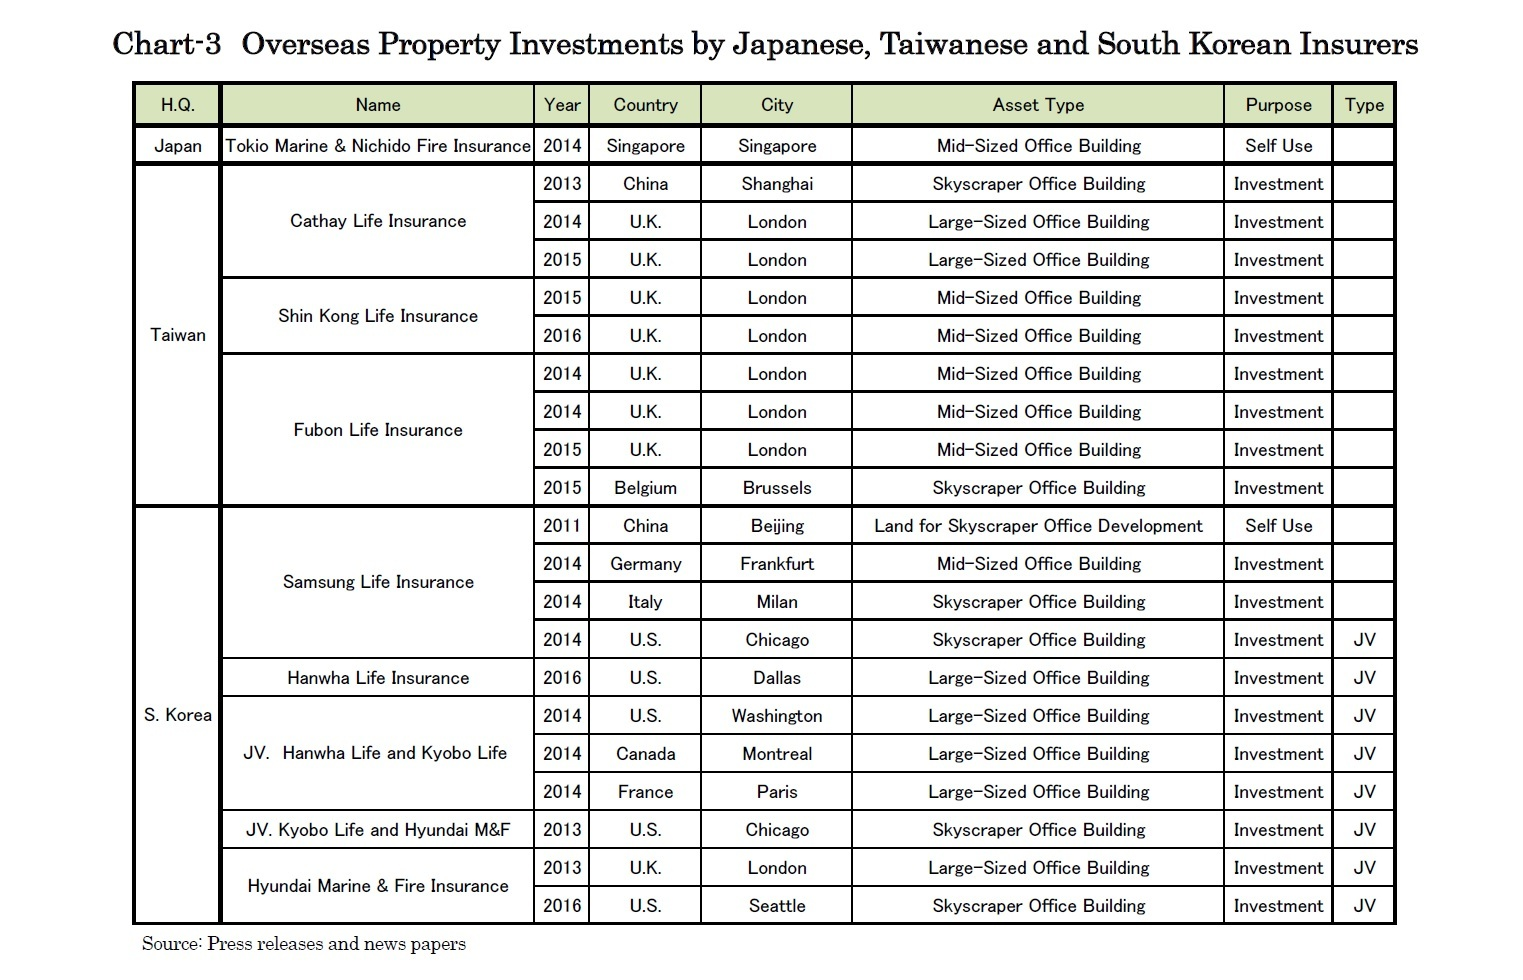 Chart-3 Overseas Property Investments by Japanese, Taiwanese and South Korean Insurers